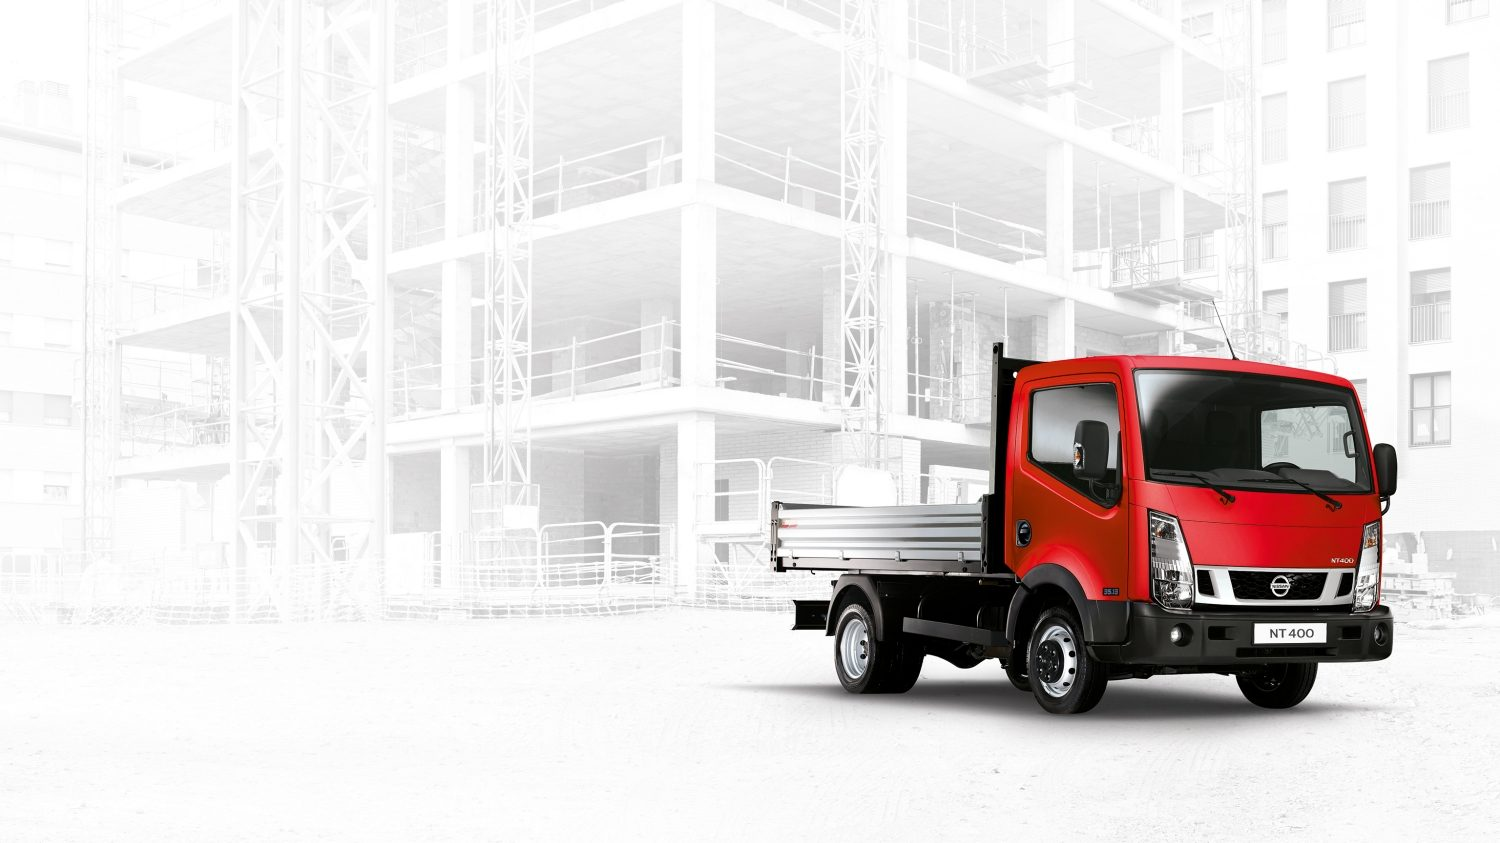 Nissan NT400 Cabstar - Large capacities